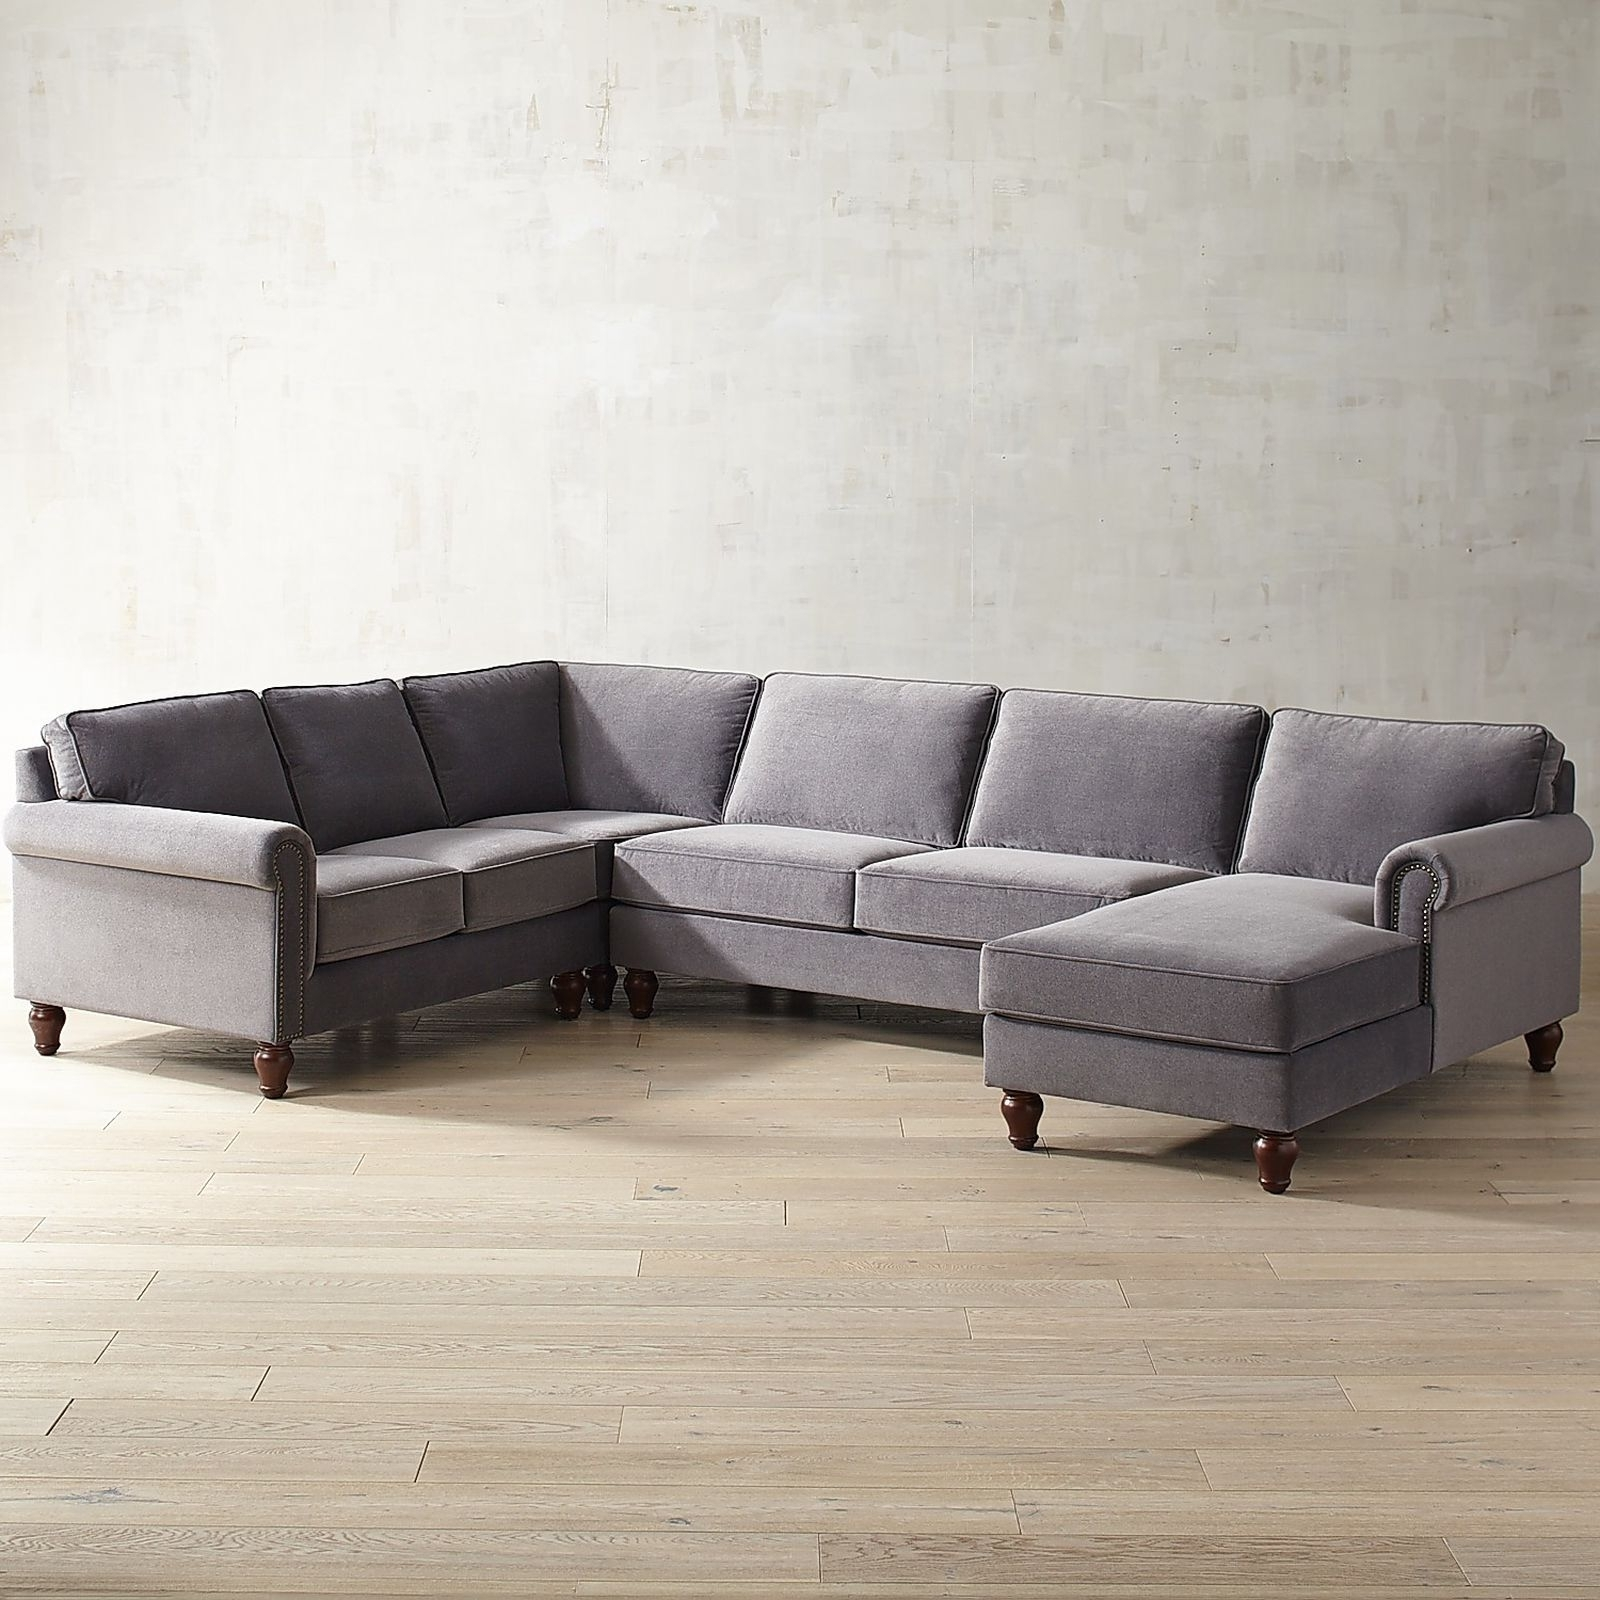 Sectional Sofa Clearance Sale Sofas Warehouse Toronto Fabric With Popular Canada Sale Sectional Sofas (View 6 of 20)